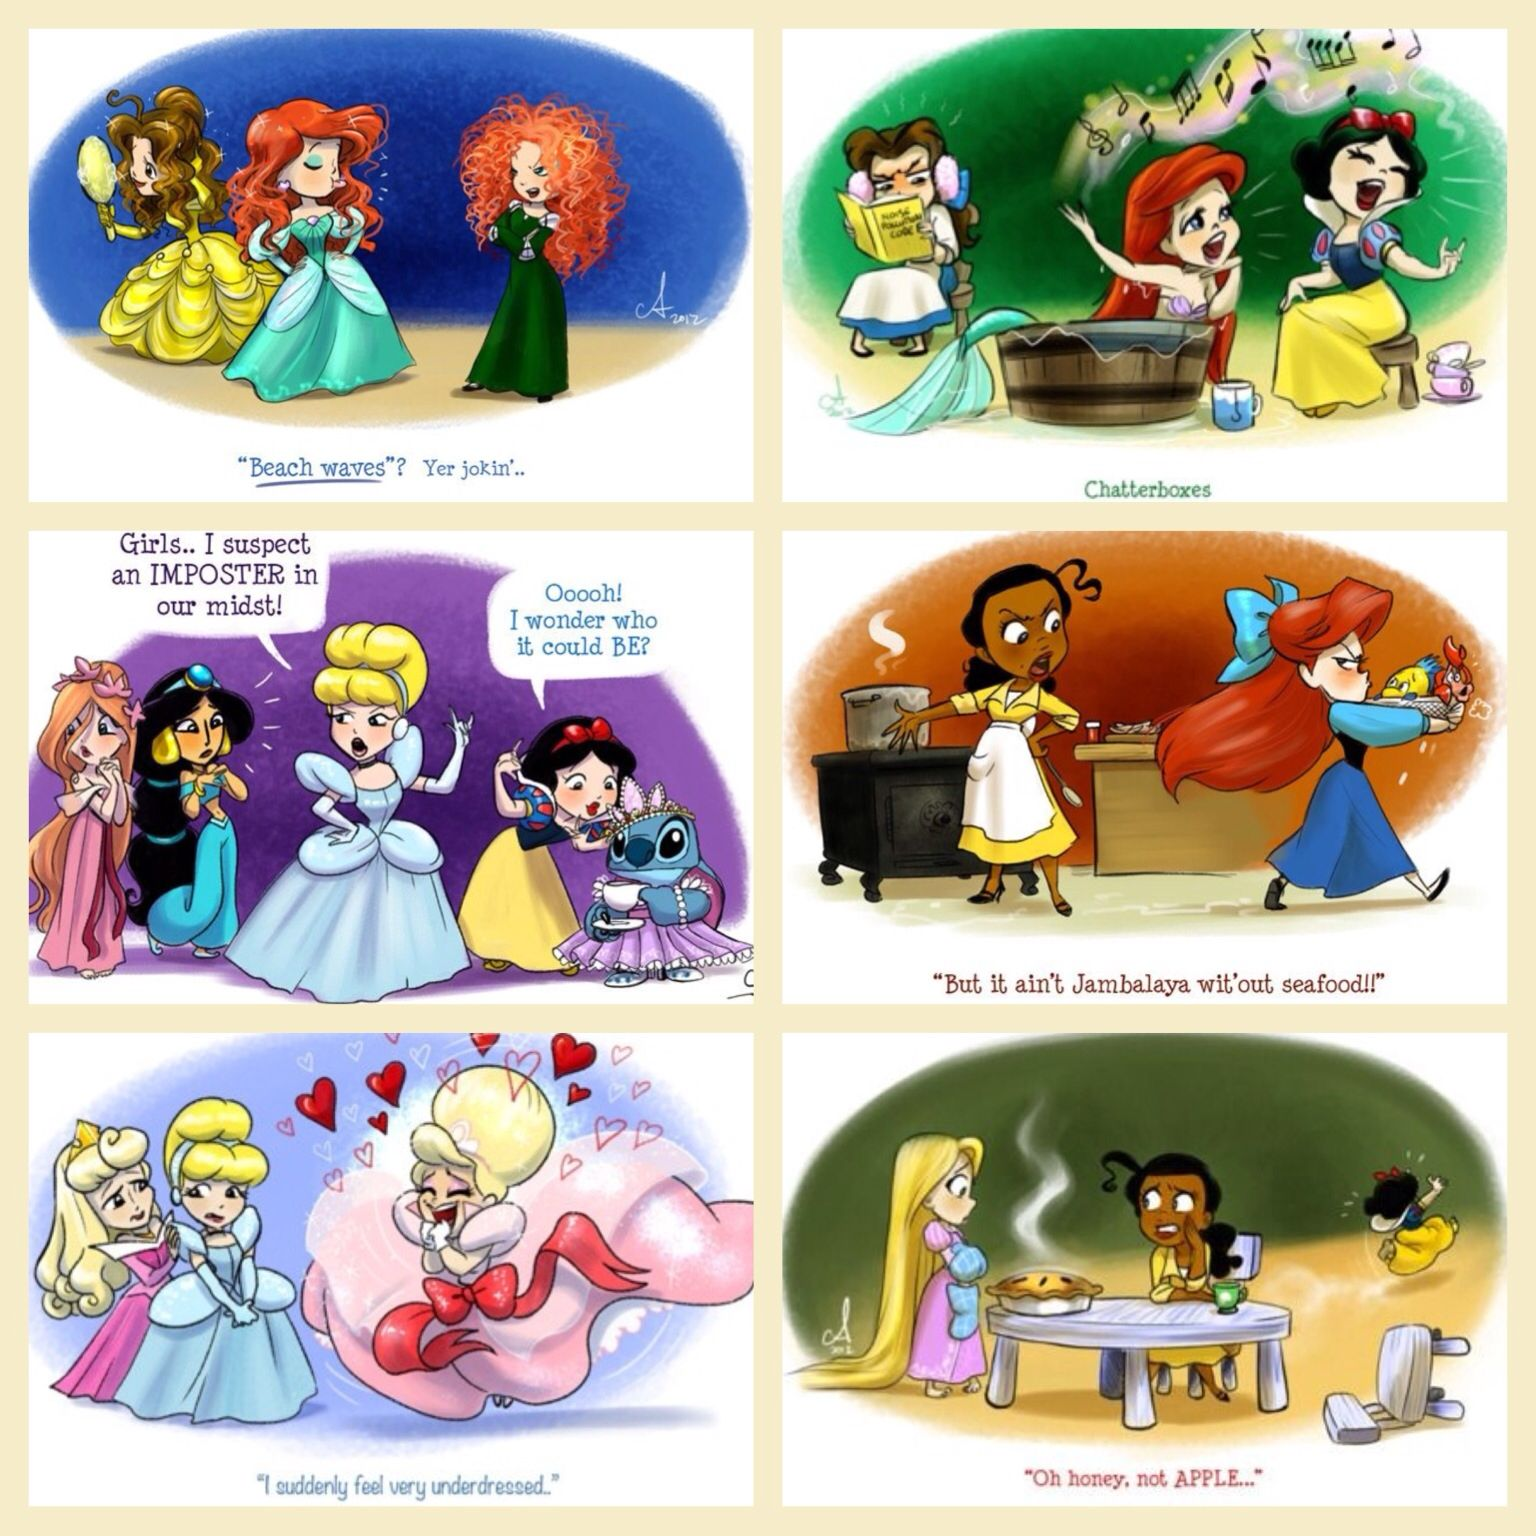 Pocket princesses #pocketprincesses